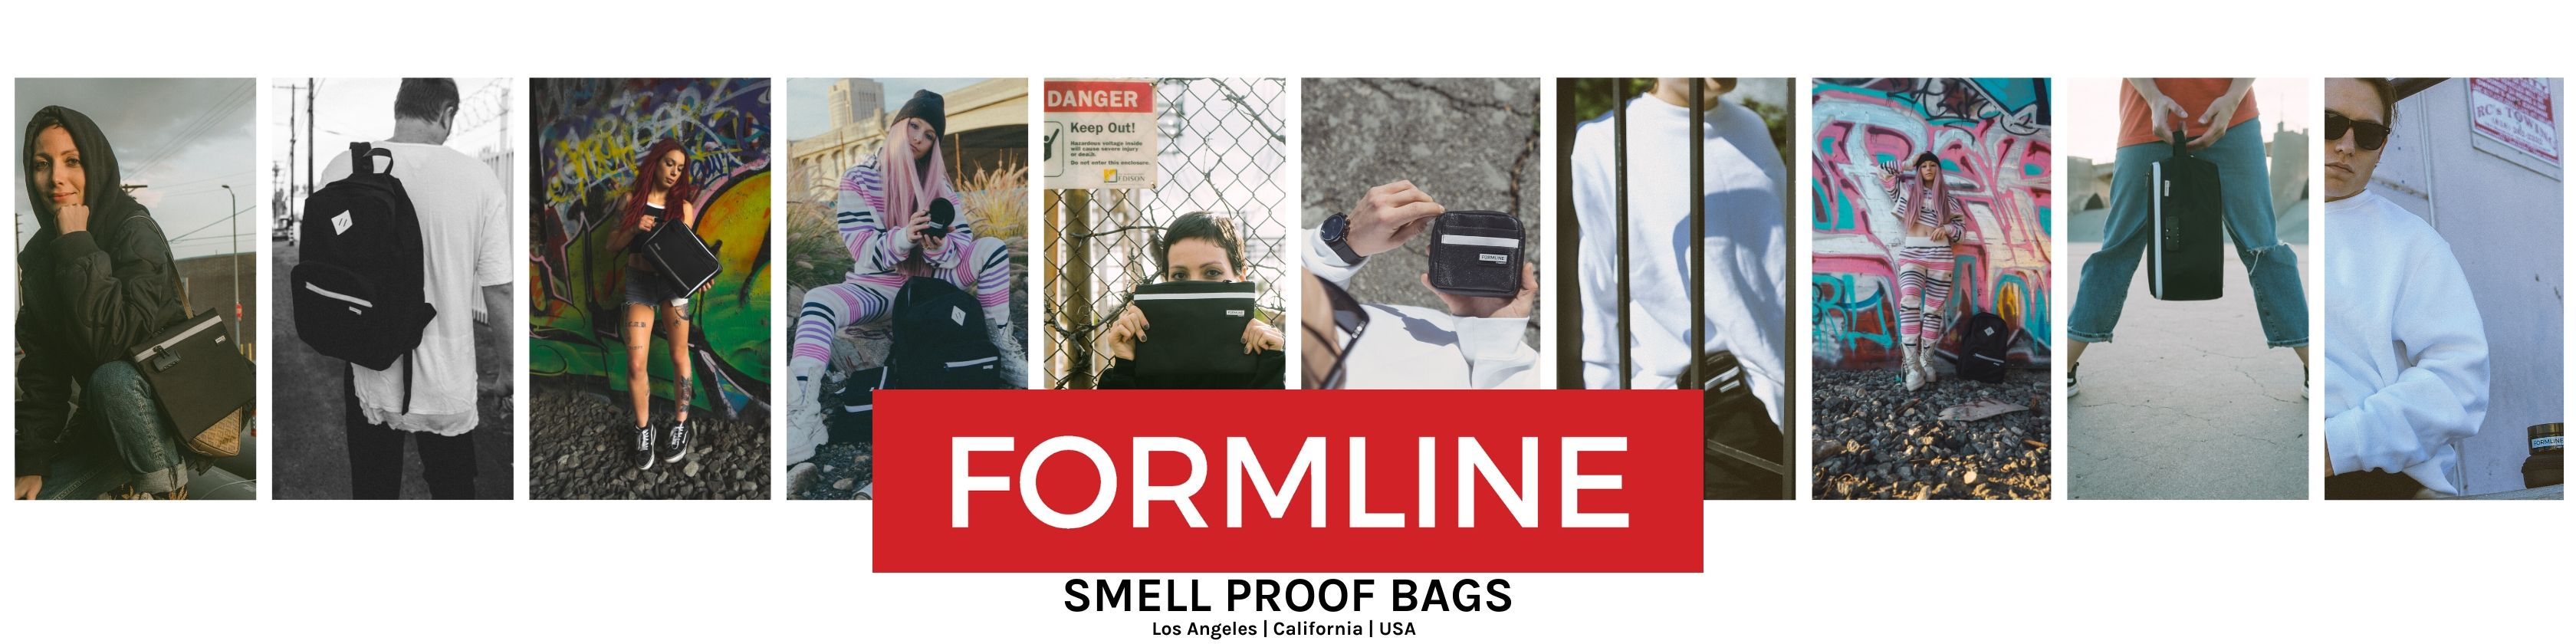 Formline Supply Products, Coupons, and Reviews